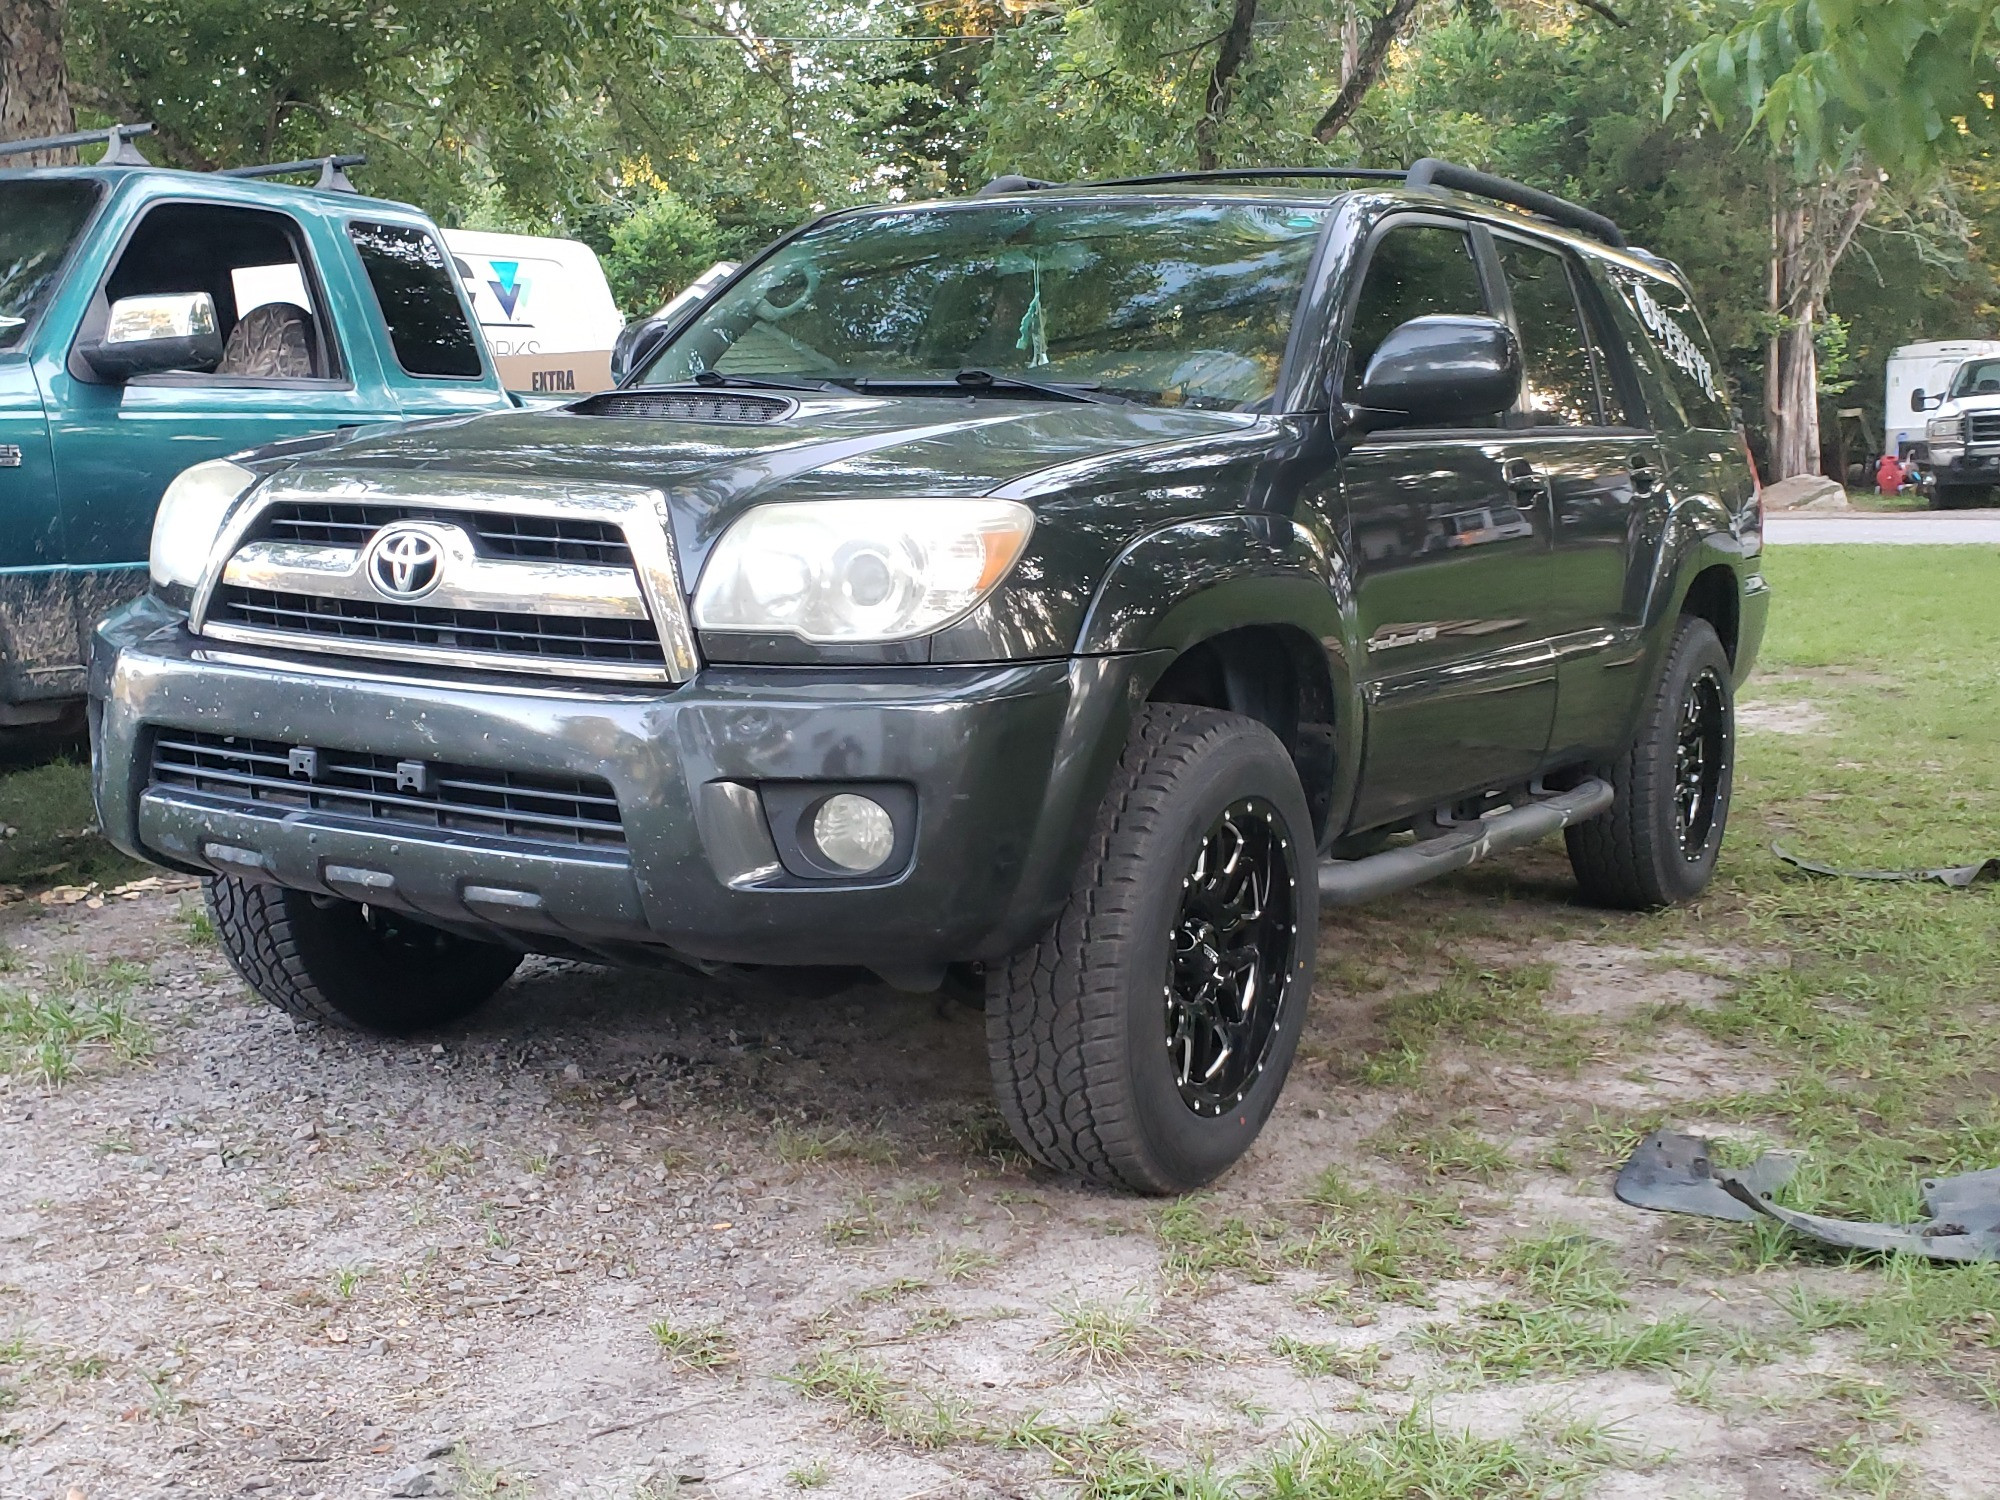 Top 5 Wheels For A Toyota 4runner Sd Wheel